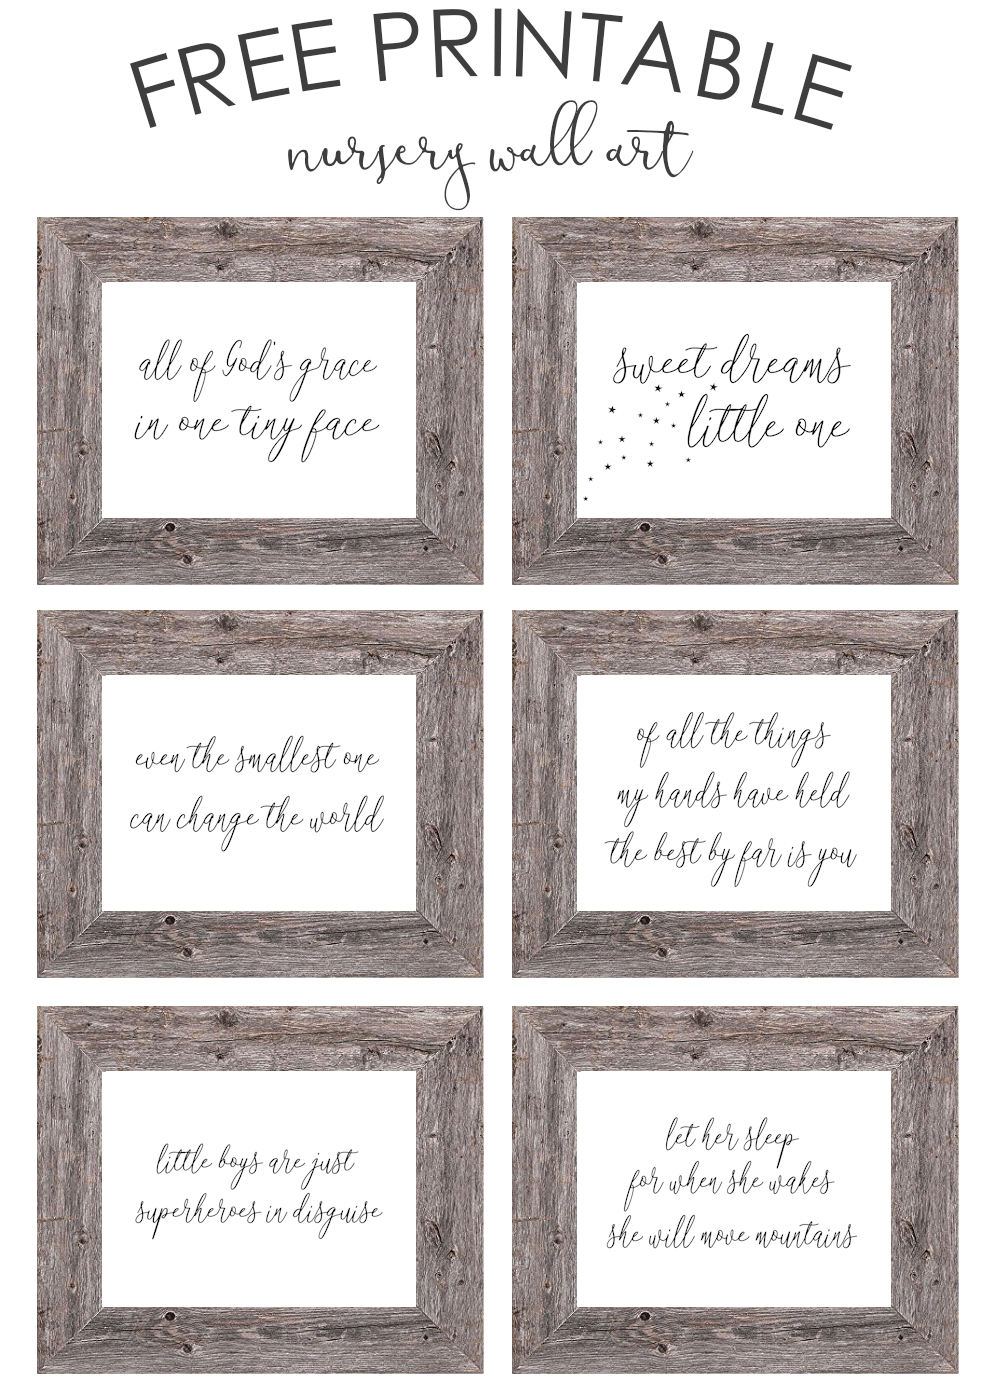 photo regarding Free Printable Wall Art for Bathroom referred to as Absolutely free Printable Nursery Wall Artwork - The Female Inventive